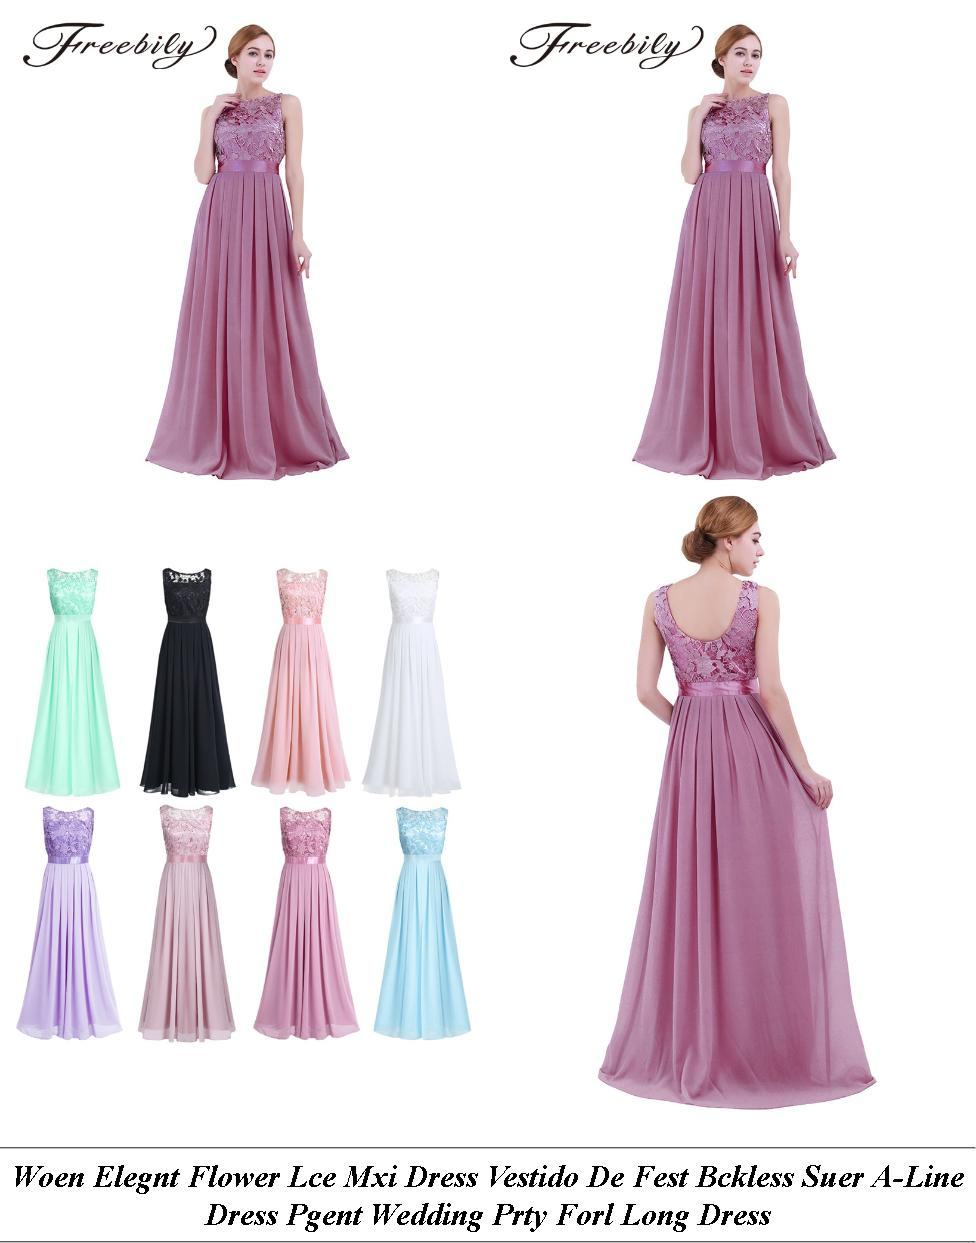 Summer Dresses For Women - Sale On Brands - Midi Dress - Cheap Clothes